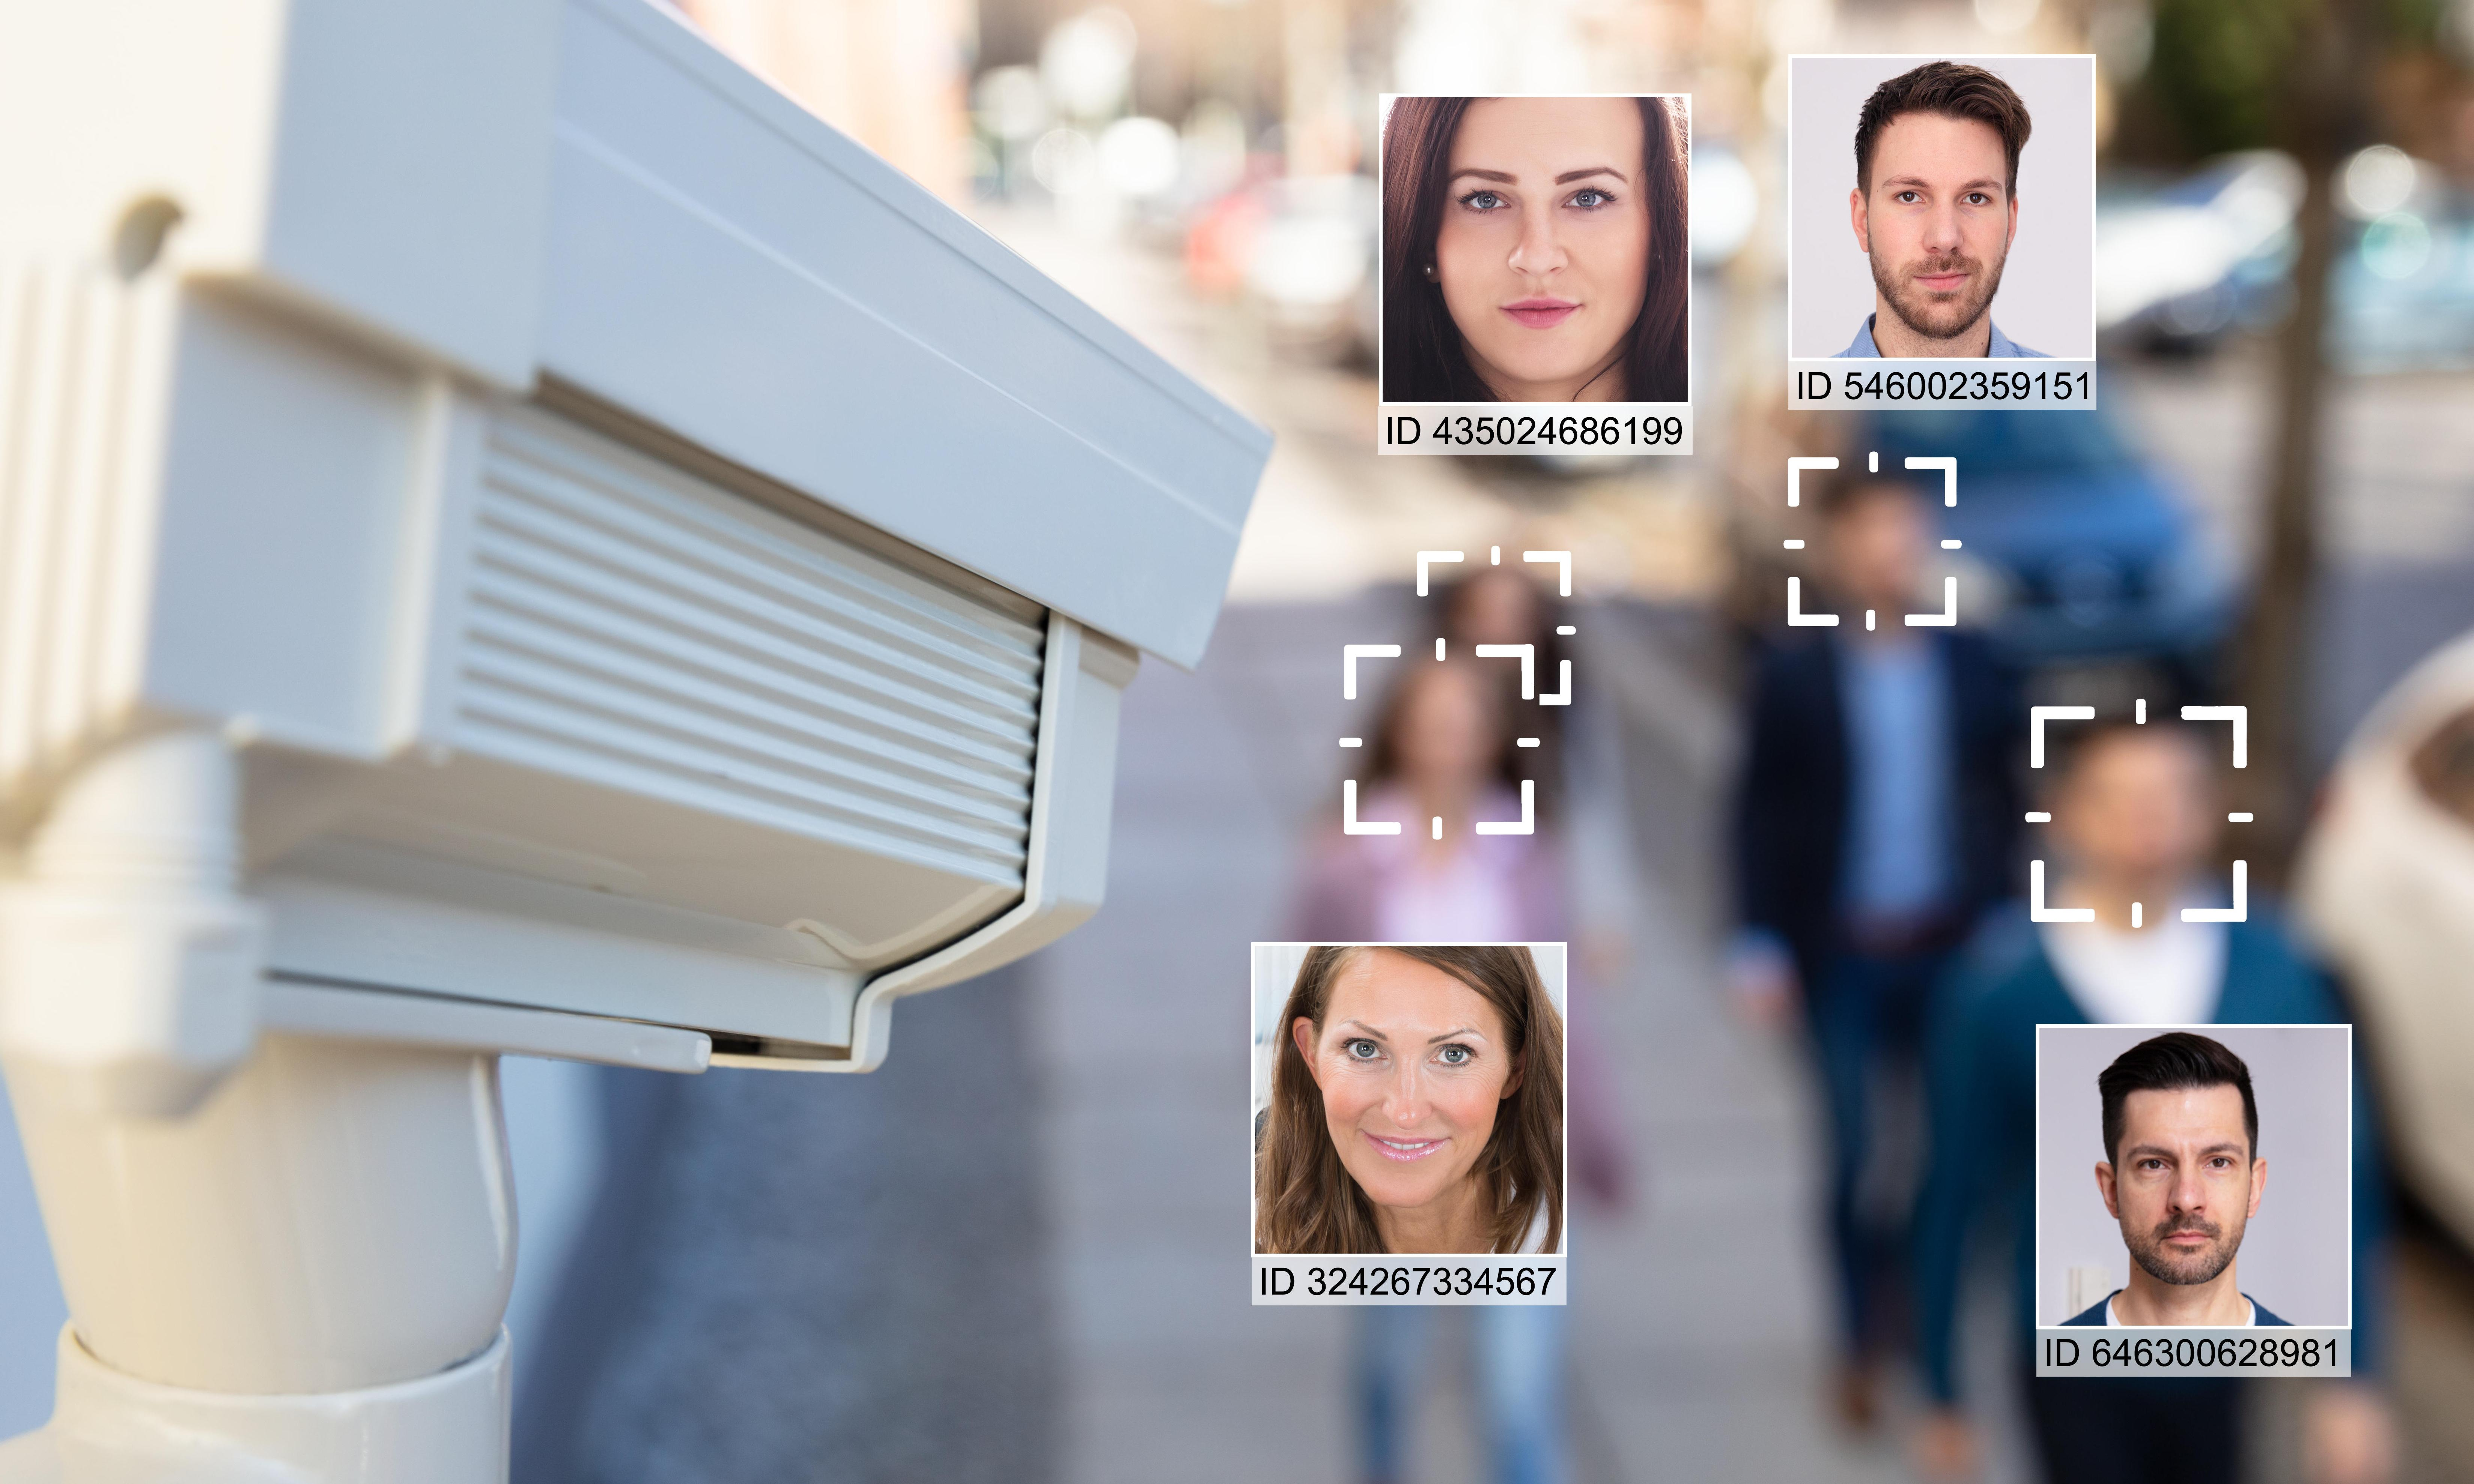 The Guardian view on facial recognition: a danger to democracy